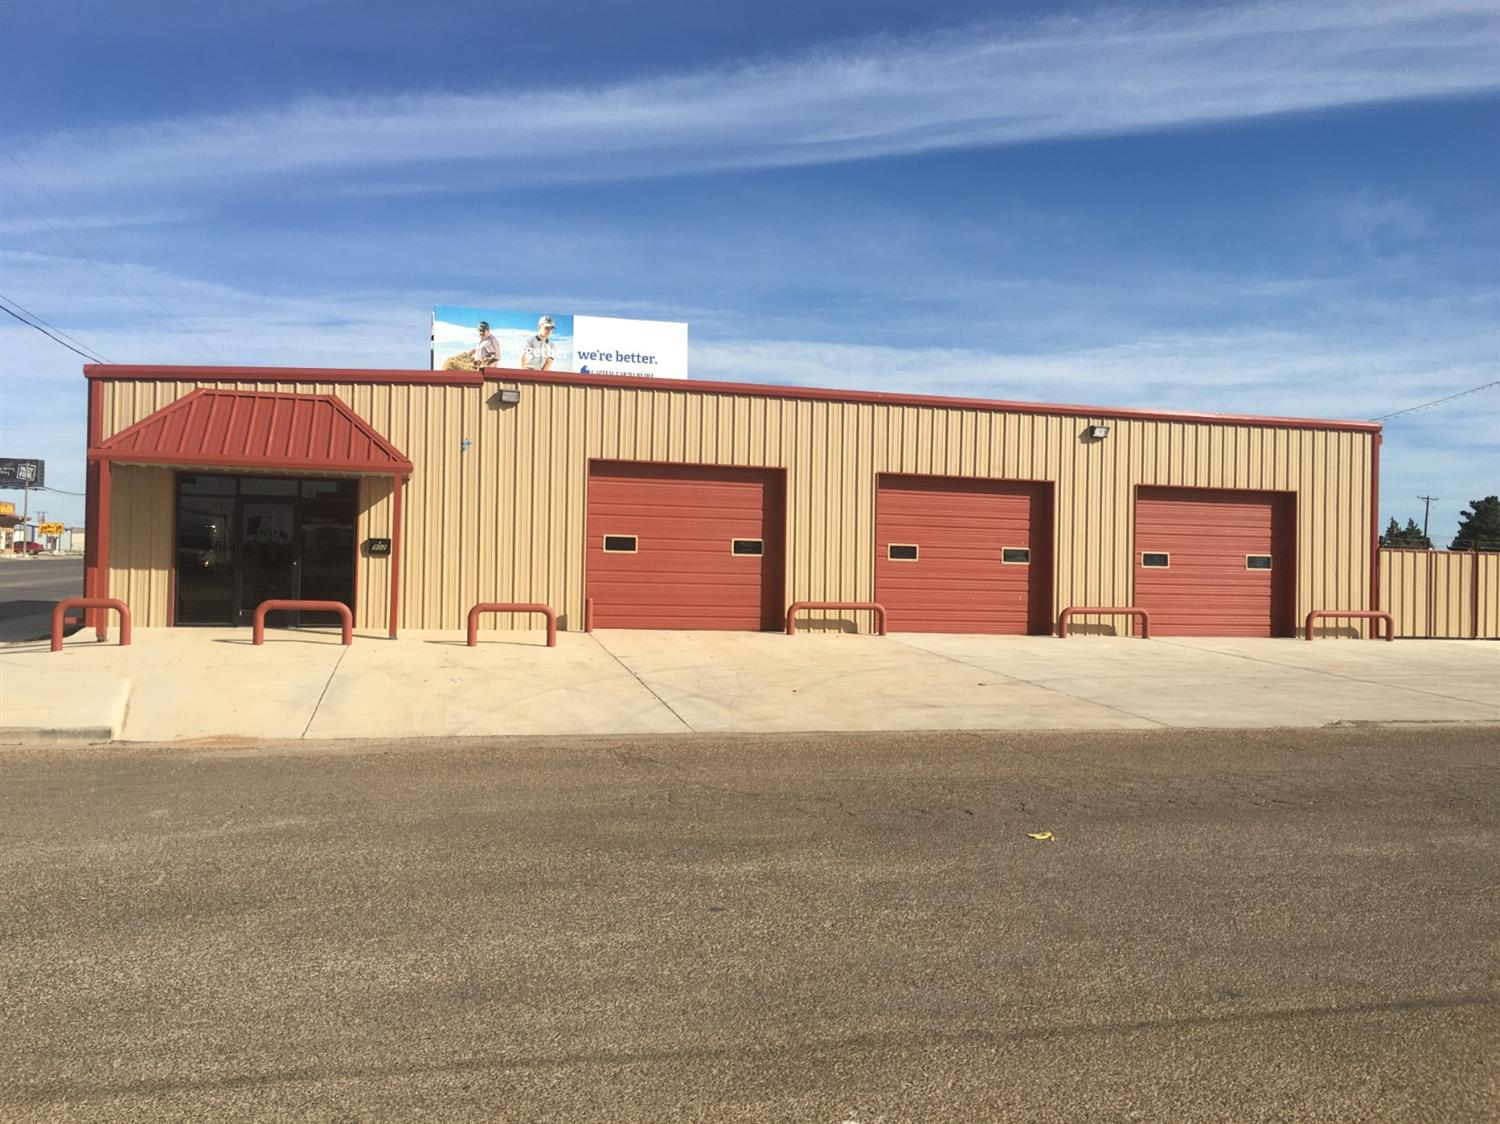 Free standing office/warehouse for sale in Brownfield, Texas. Property is leased to an oil and gas service provider. Current tenant lease expires August 31, 2021. Cap rate is 11.96%. Property has three 10' overhead doors and a small 3,500 SF stackyard, two bathrooms, two offices, and front counter with lobby. Remodeled in 2017.    NOI - $29,900 - Income Producing Property  Oil & Gas Service Related Tenant  Building Remodeled in 2017  Small Fenced Stack Yard